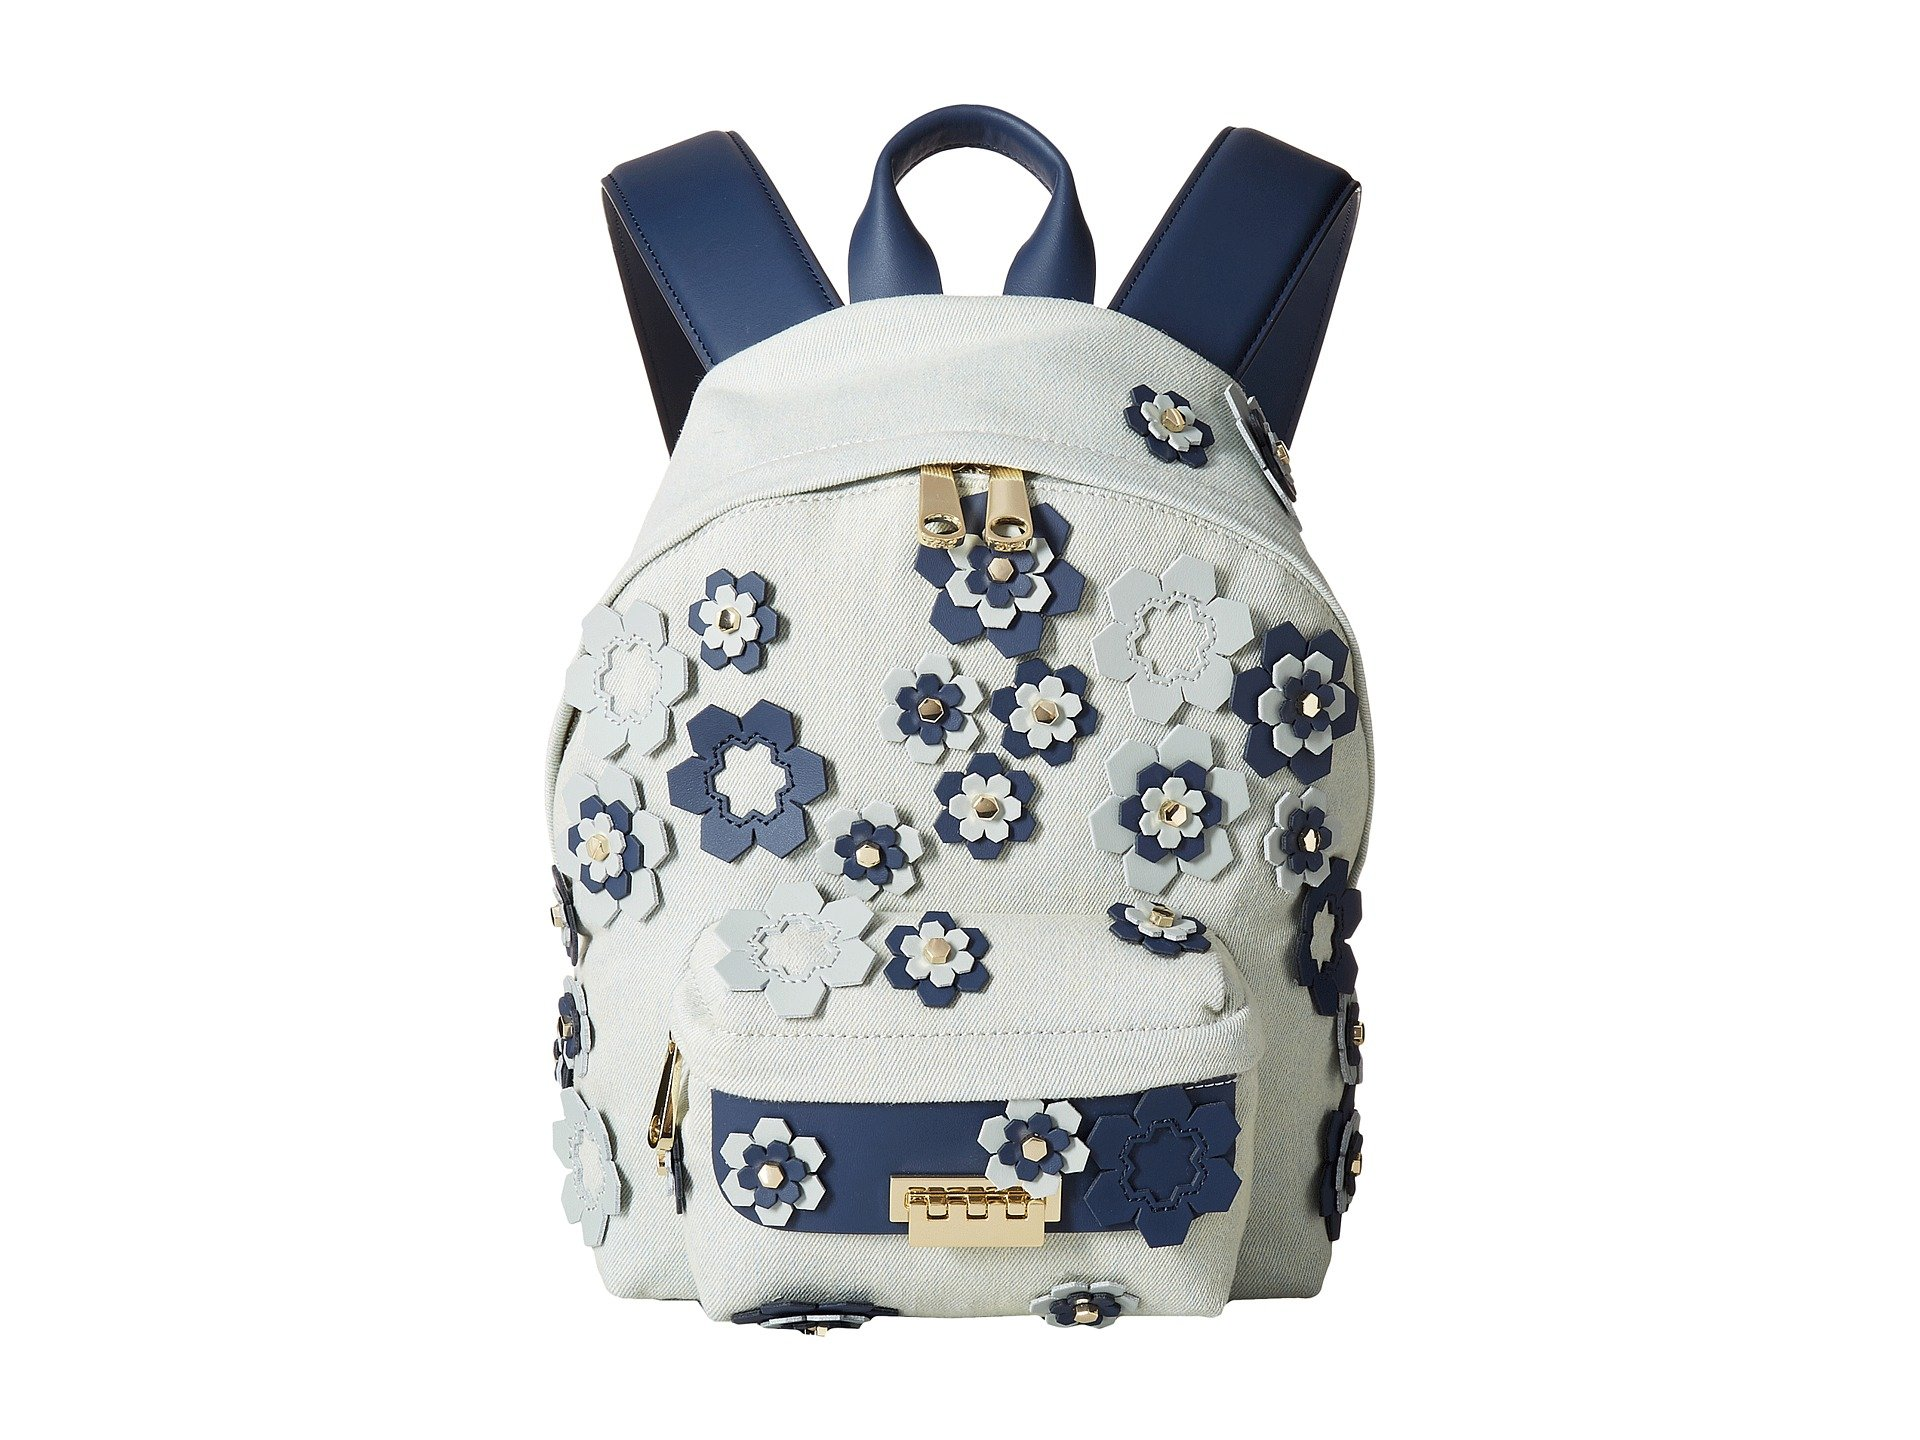 Mochila para Mujer ZAC Zac Posen Eartha Iconic Denim Small Backpack with Hex Floral Applique  + ZAC Zac Posen en VeoyCompro.net